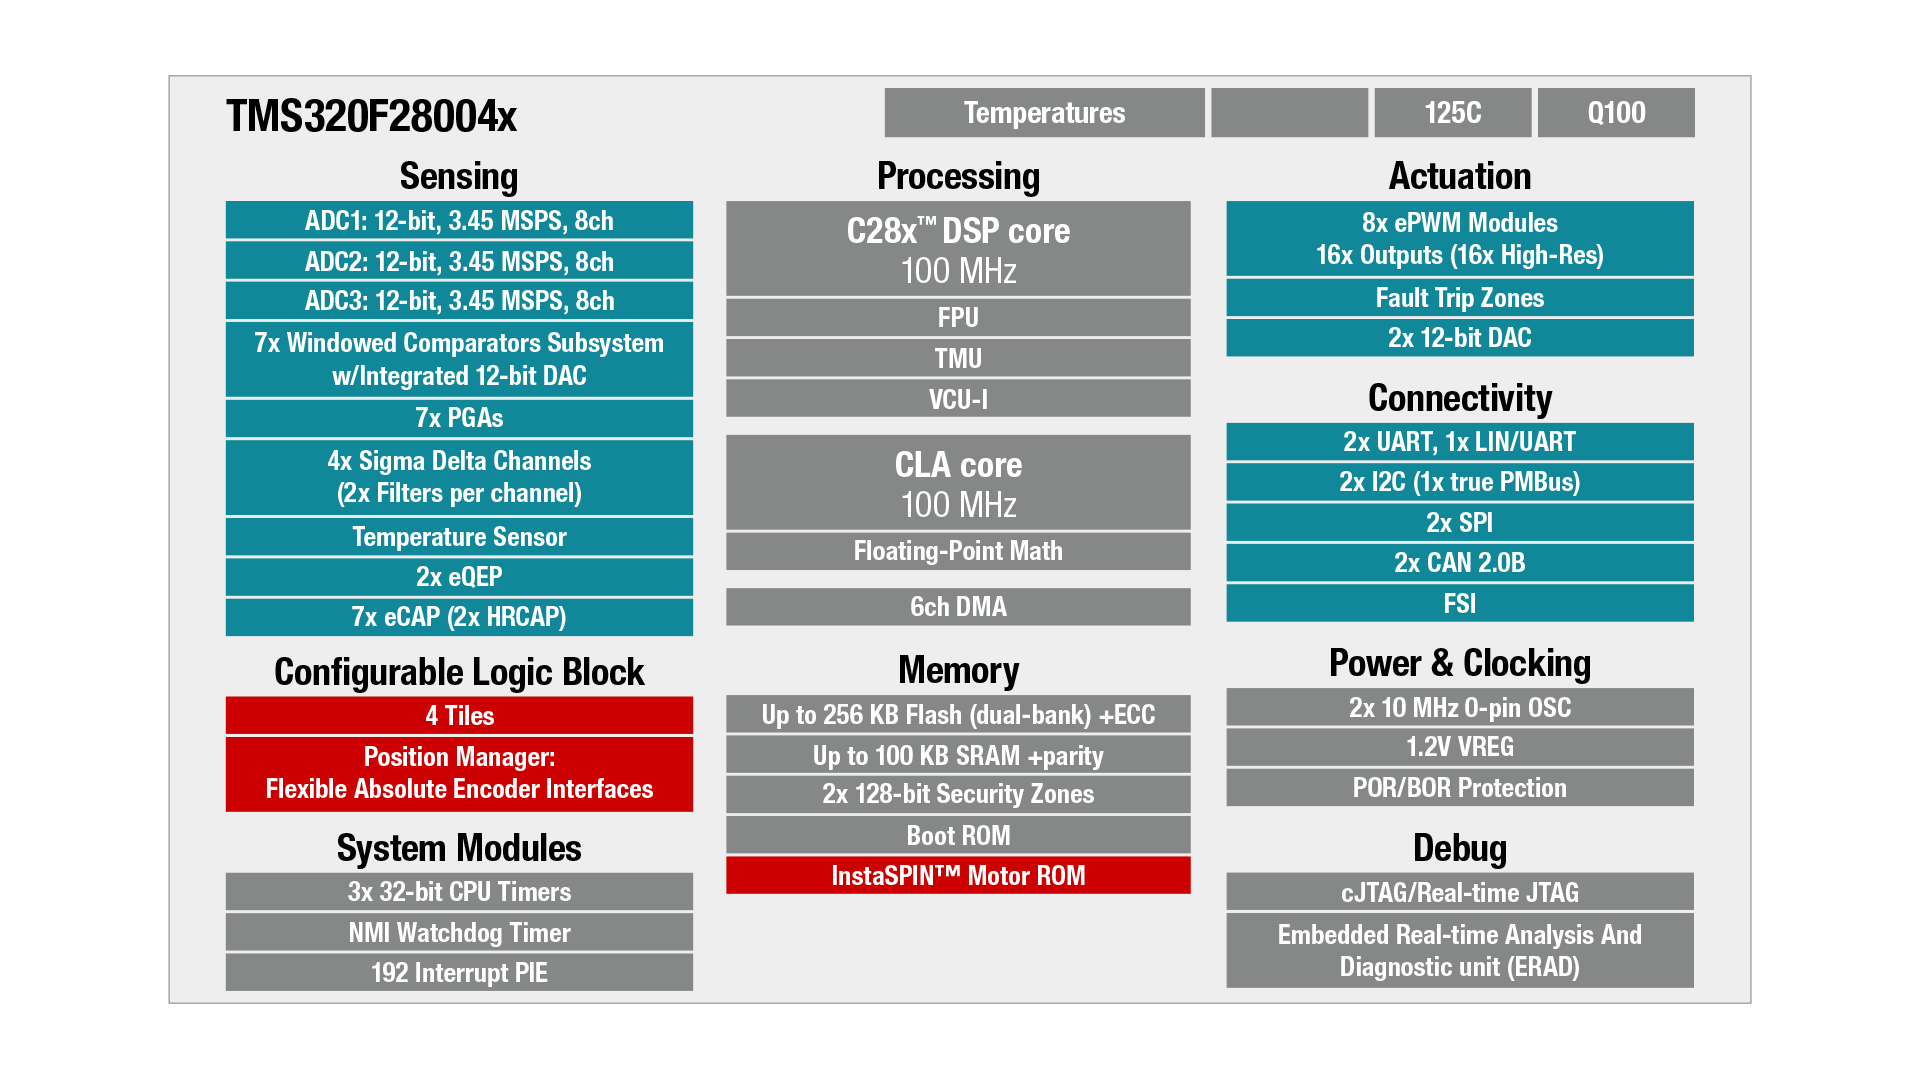 TMS320F28004x block diagram